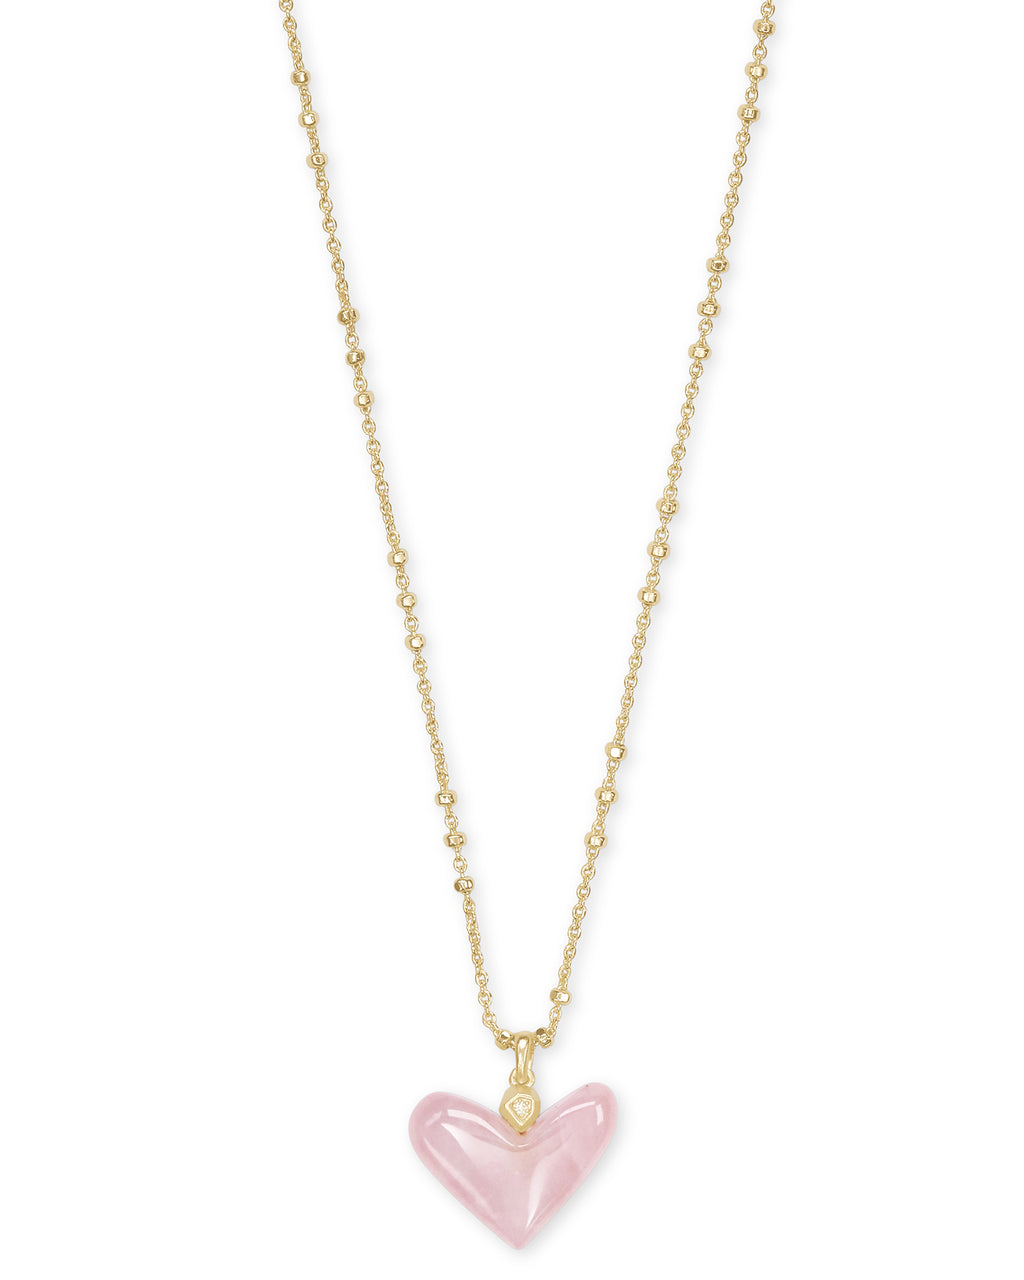 Kendra Scott Poppy Heart Short Pendant - Gold/Rose Quartz